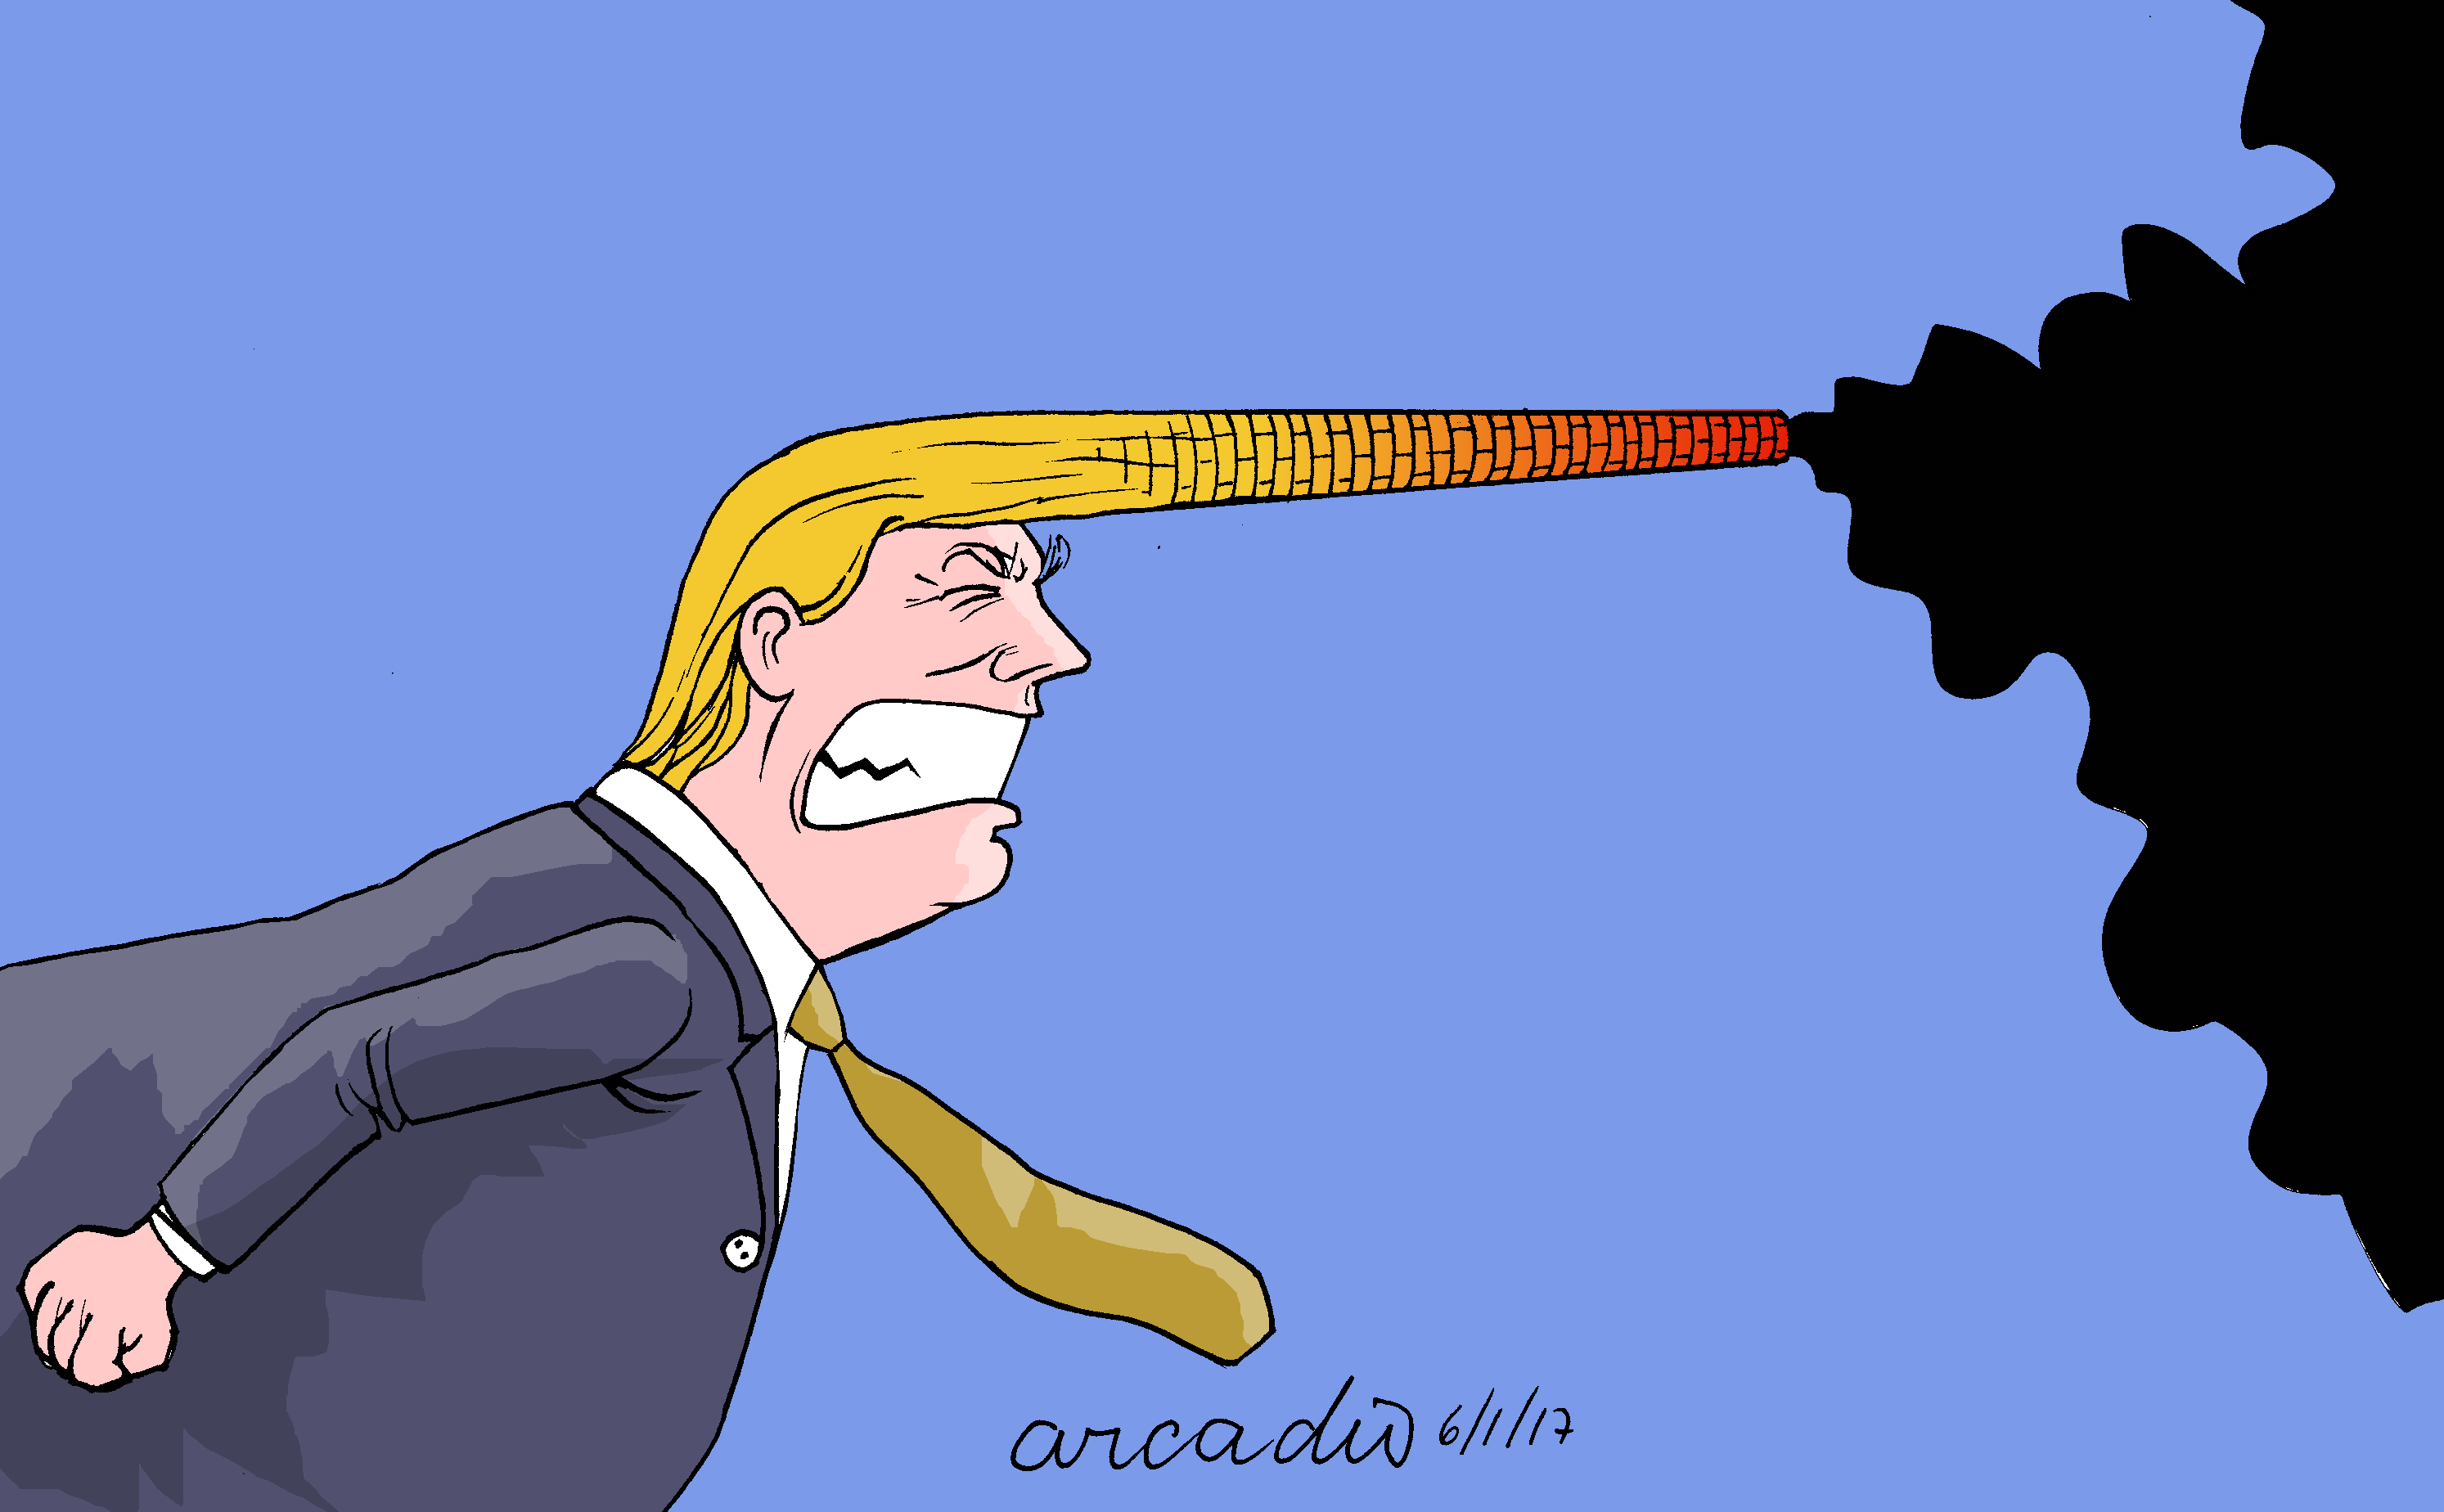 Cartoon of Trump's hair forming smoke stack and blowing out dirty air